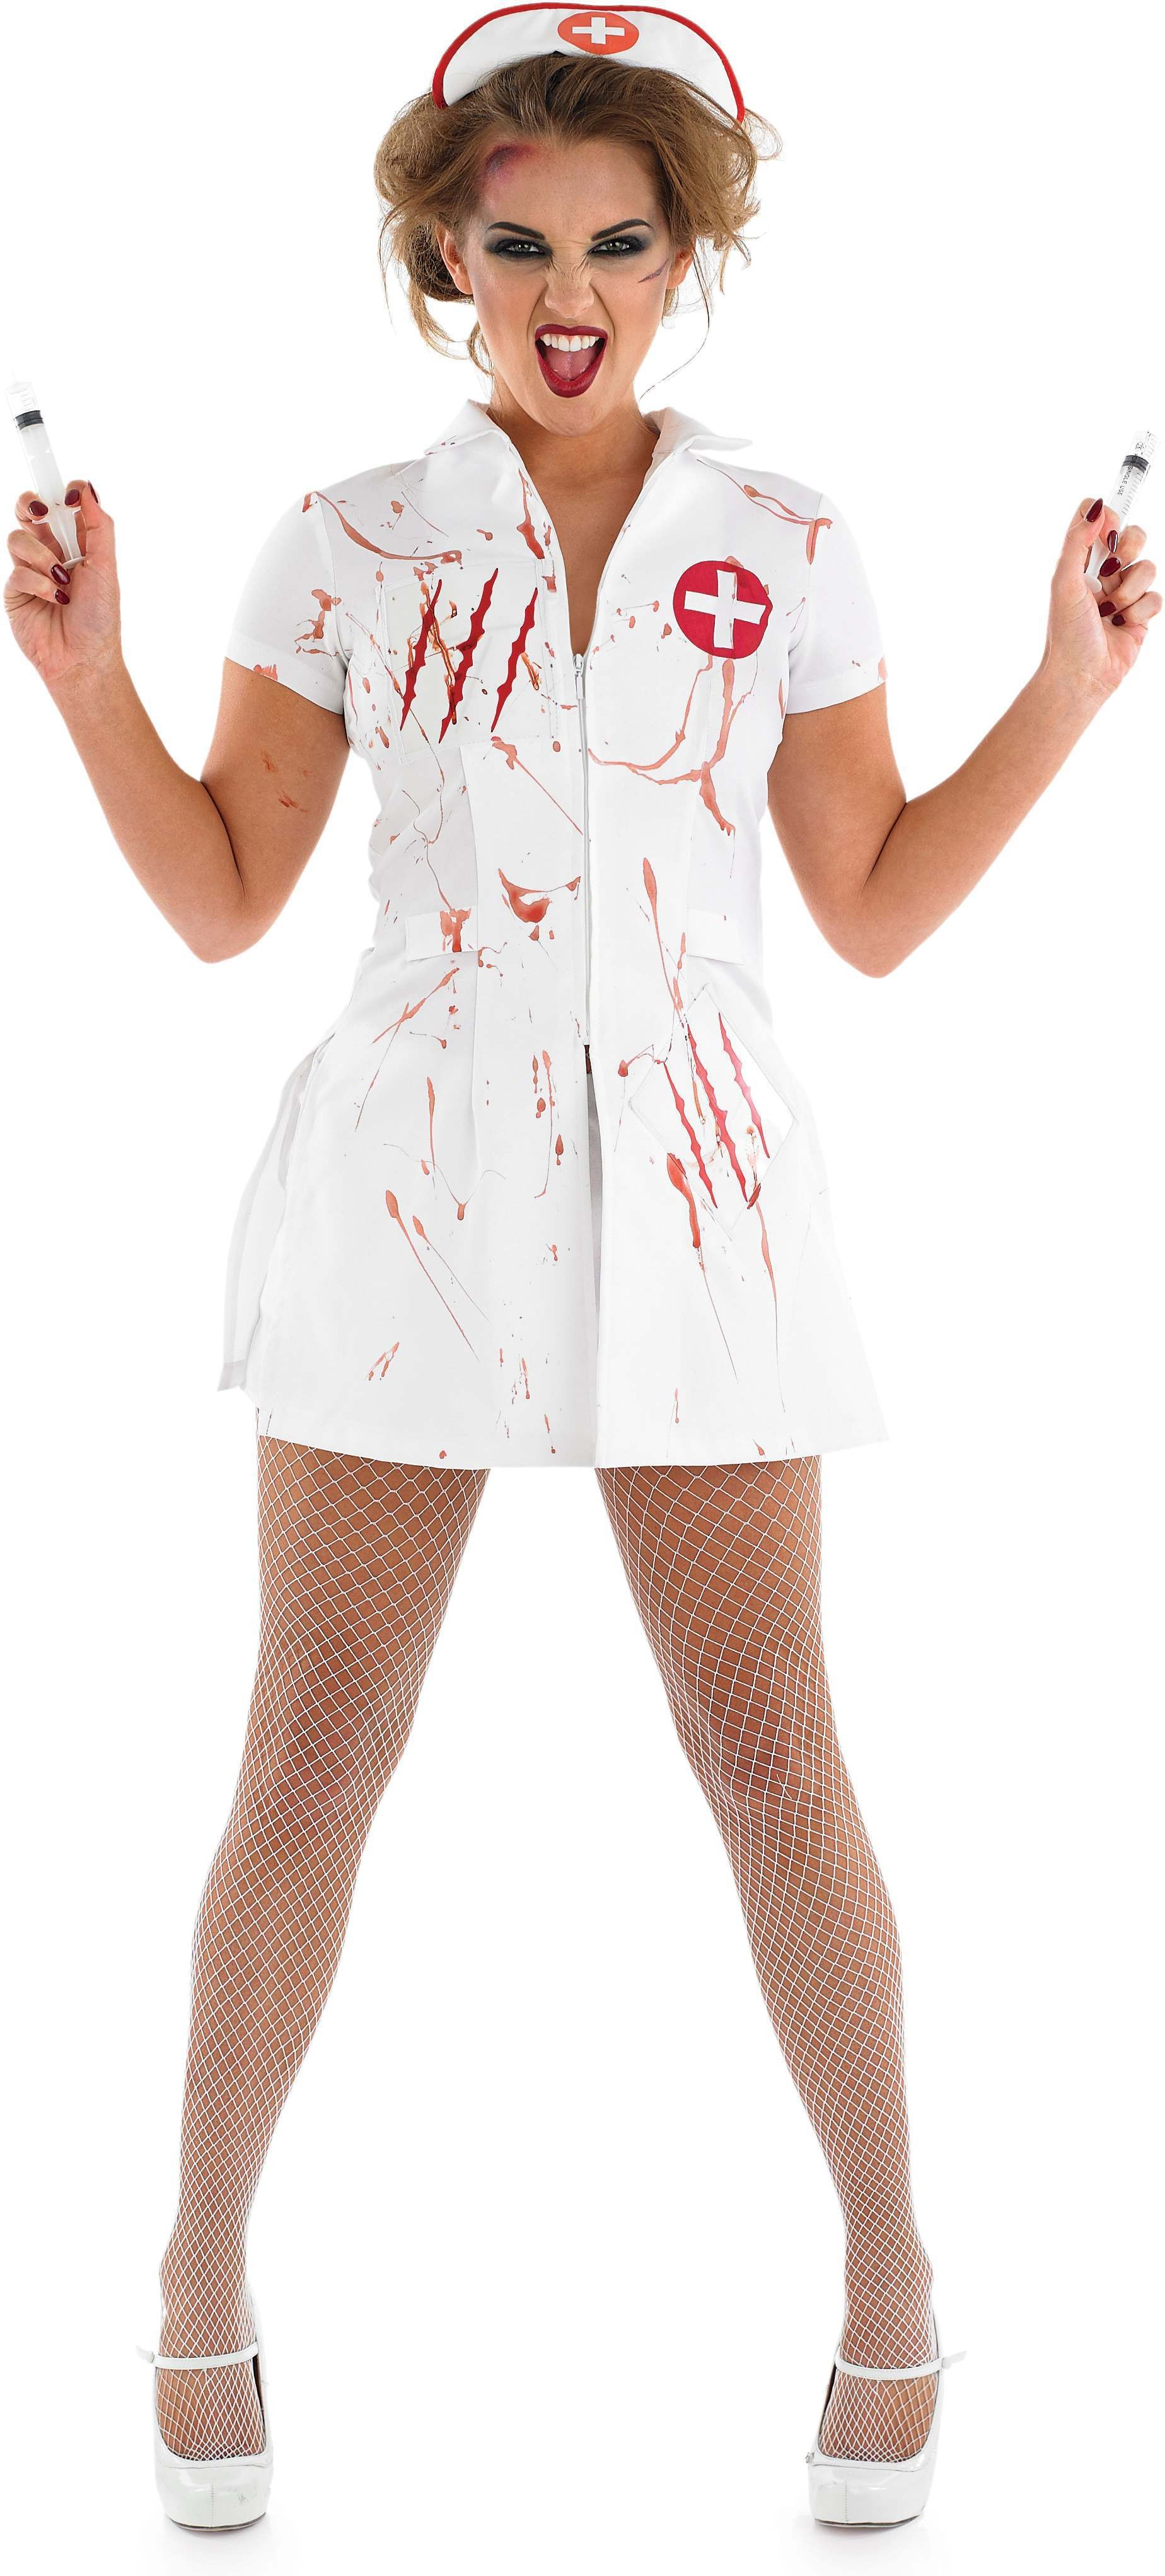 Ladies White (Nurse Nightmare)Fancy Dress Costume